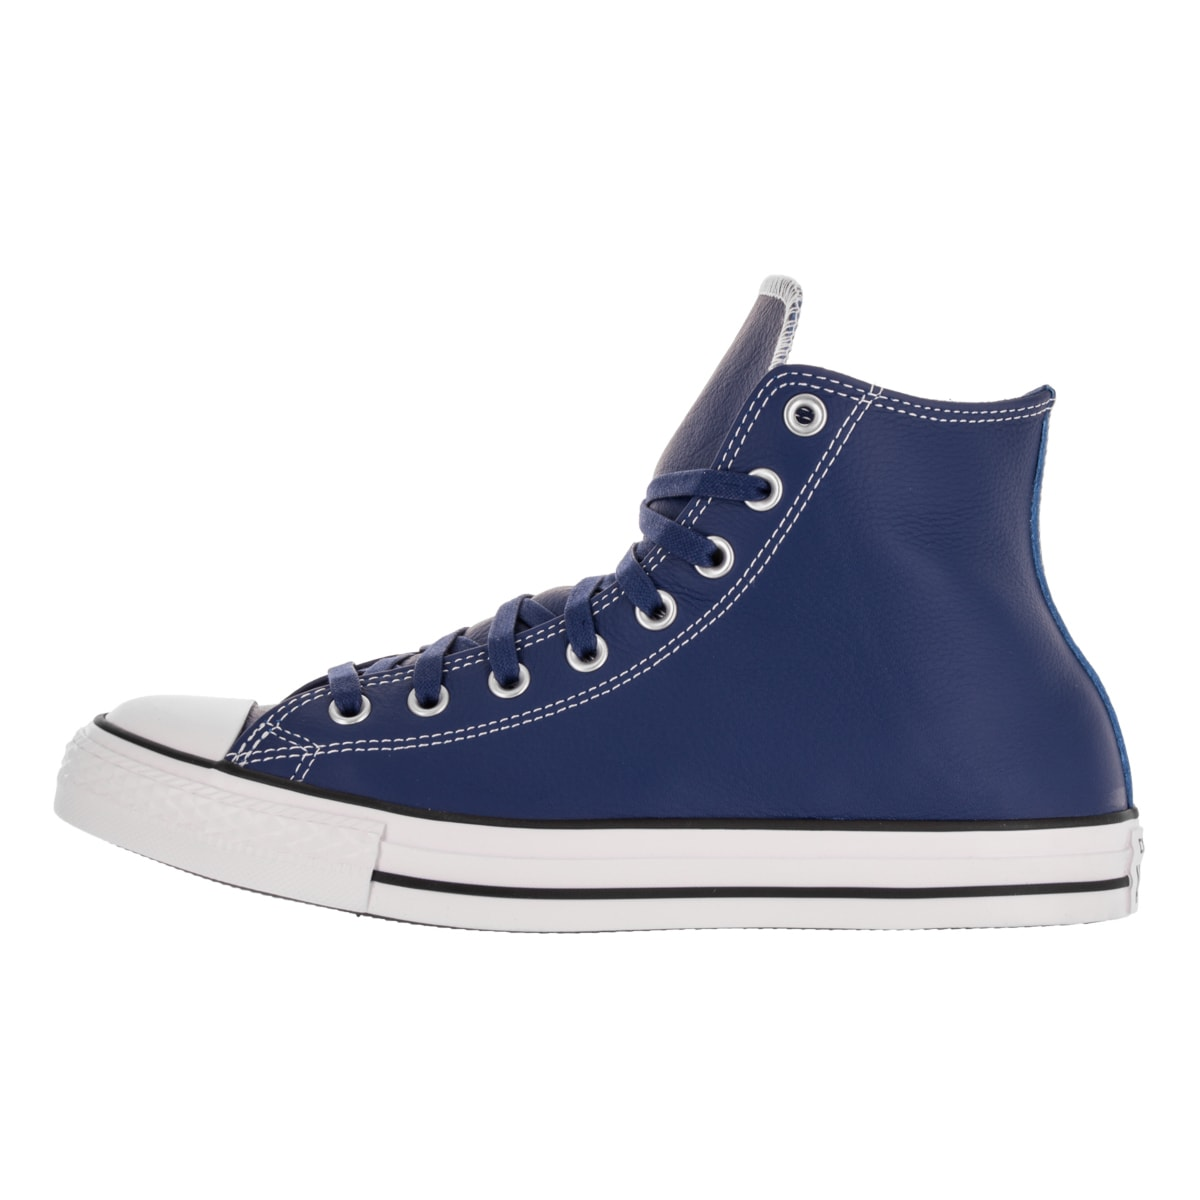 277717ae6e37 Shop Converse Unisex Chuck Taylor All Star Hi Roadtrip Blue Casino White  Basketball Shoe - Free Shipping Today - Overstock.com - 13395312